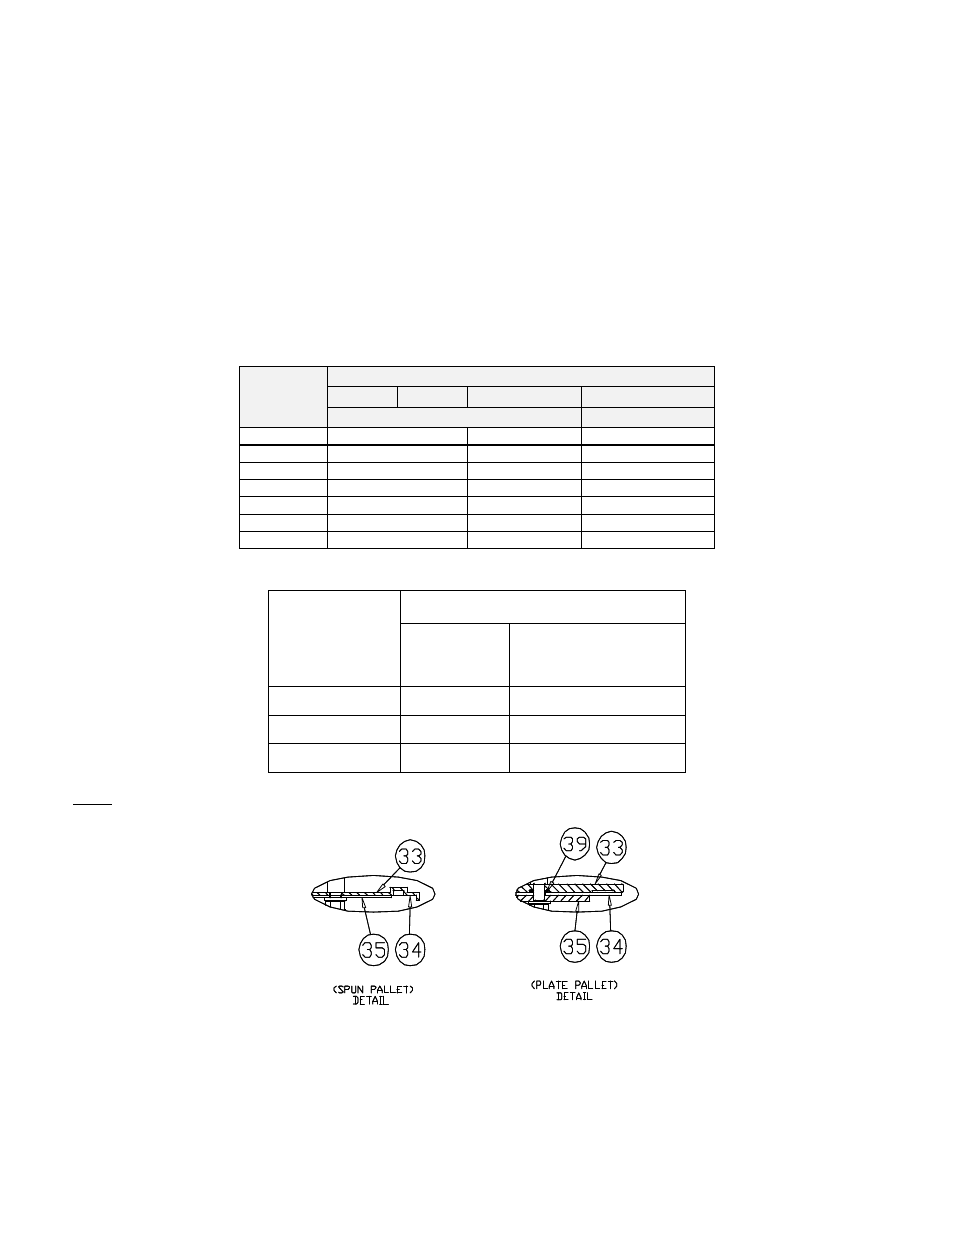 Disassembly | Groth 1201B User Manual | Page 9 / 20